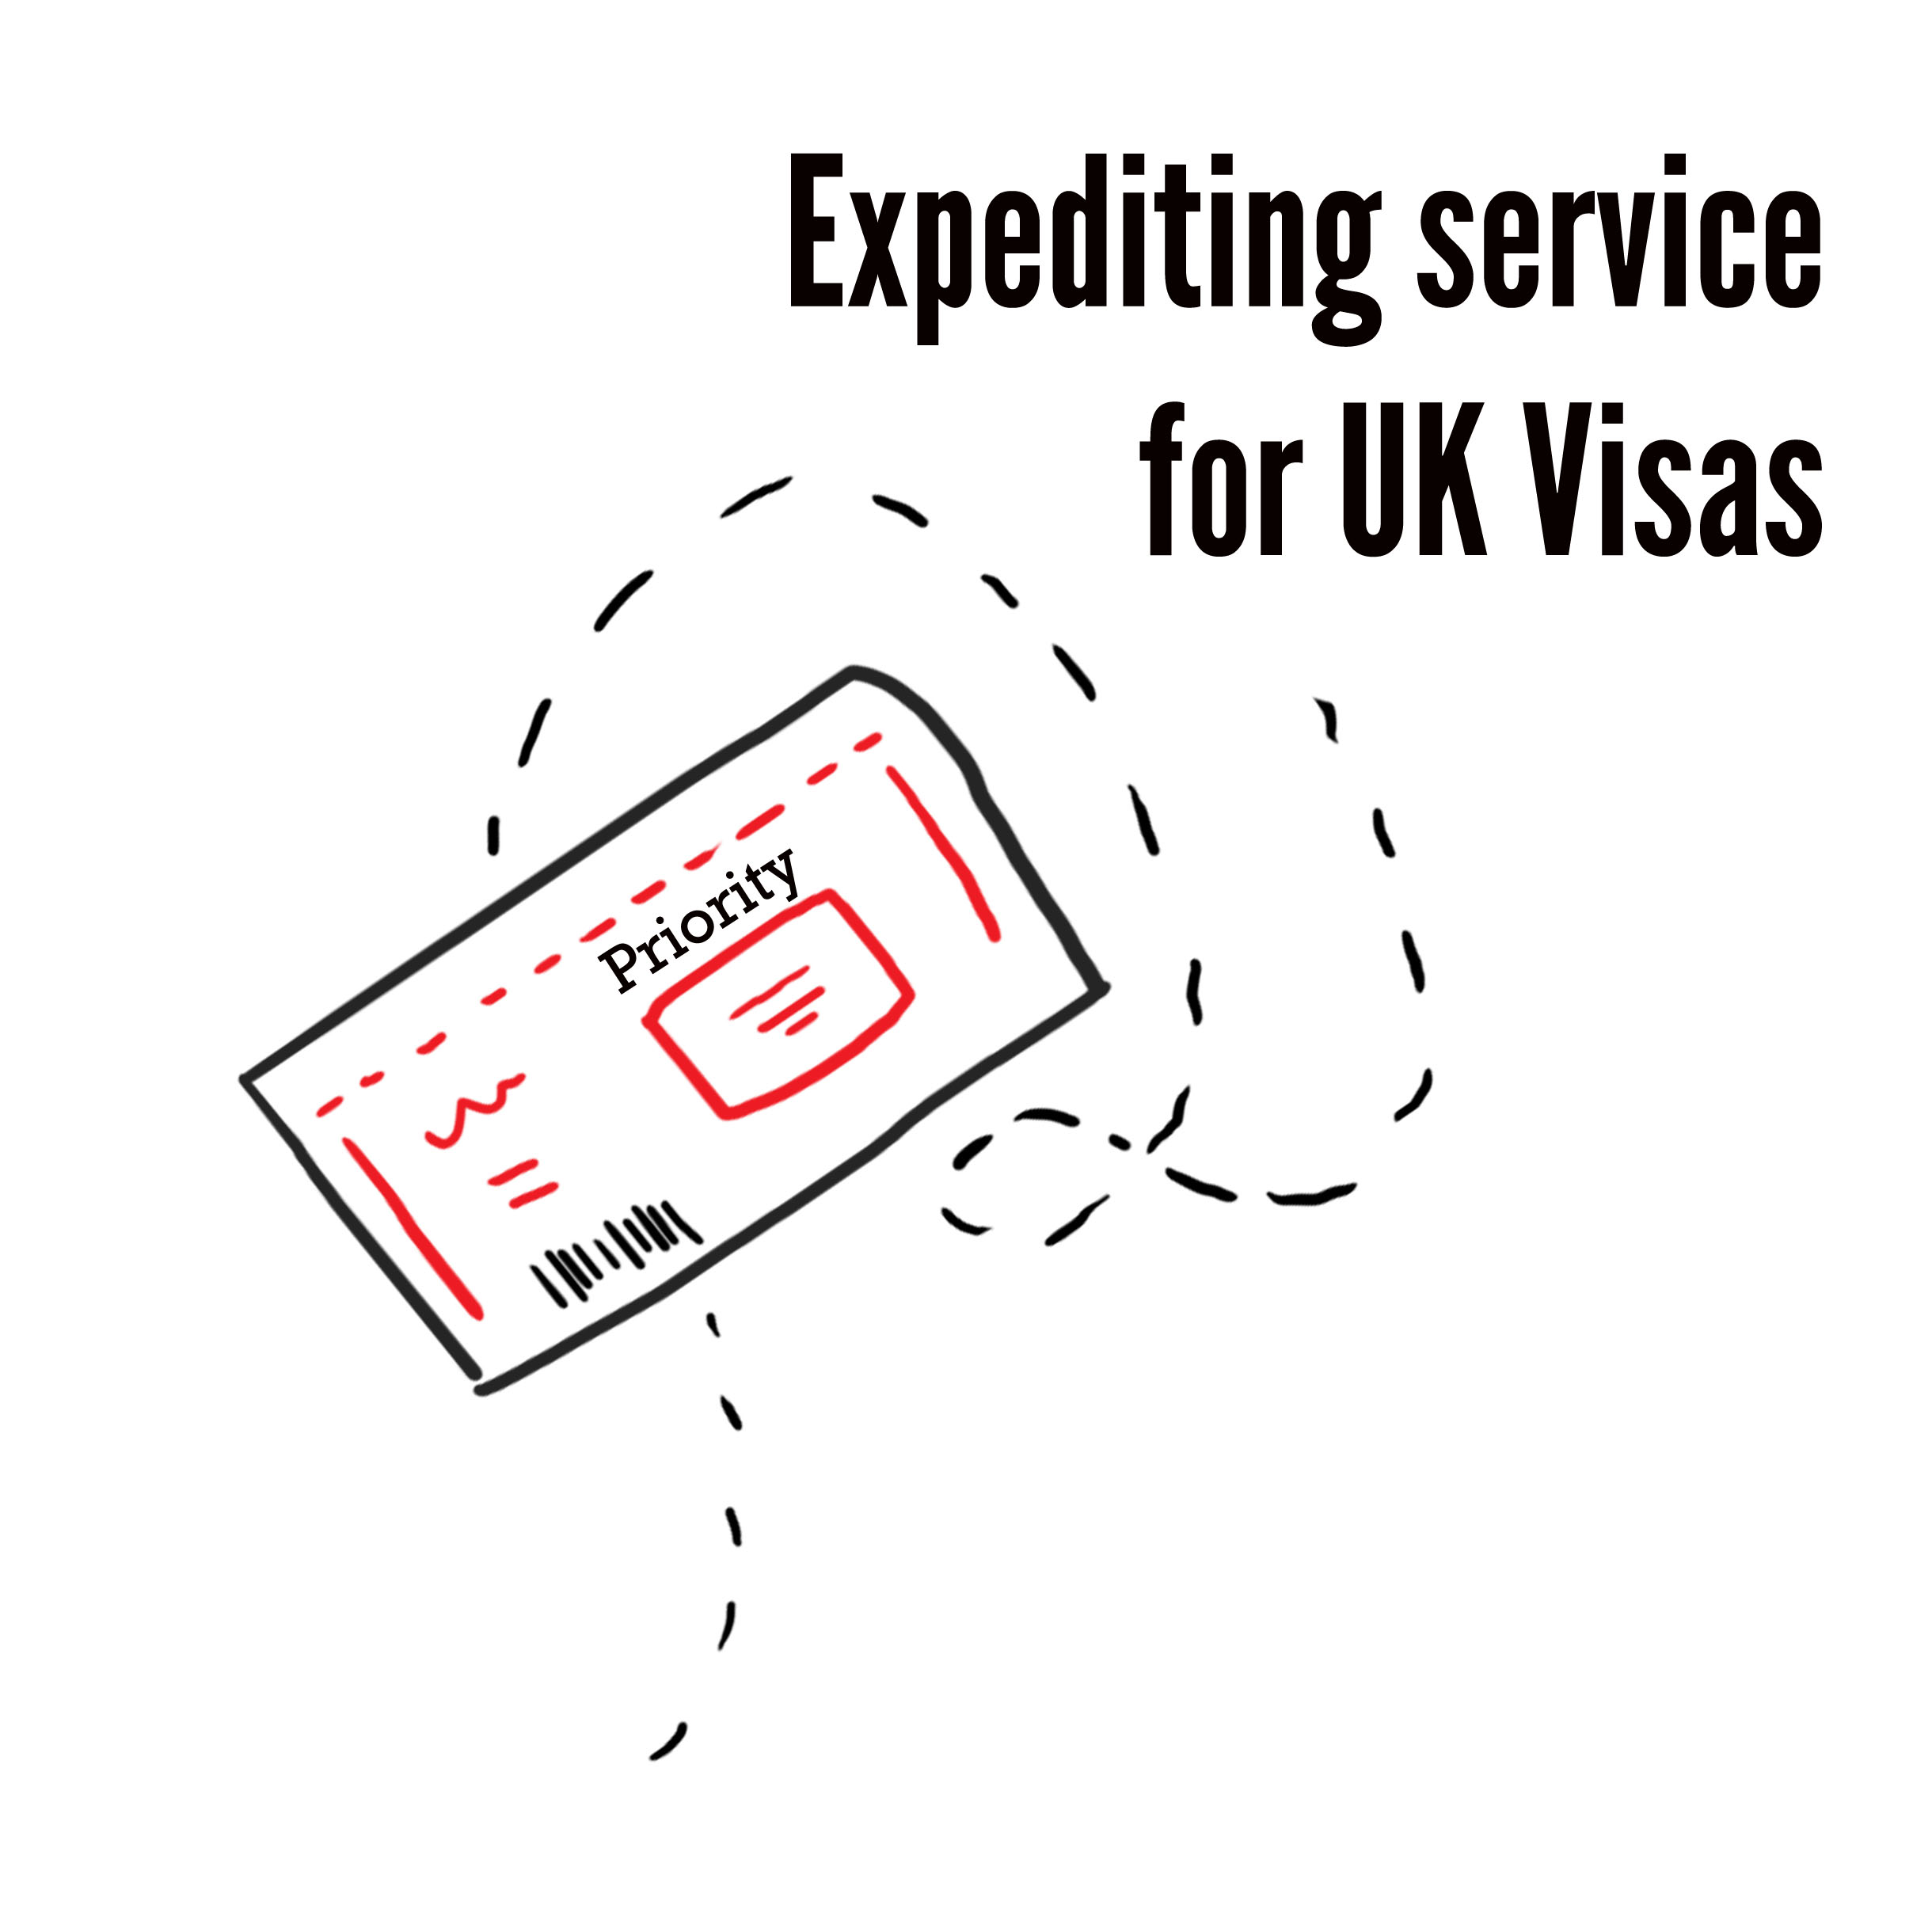 Expediting service: How to speed up the UK visa process and